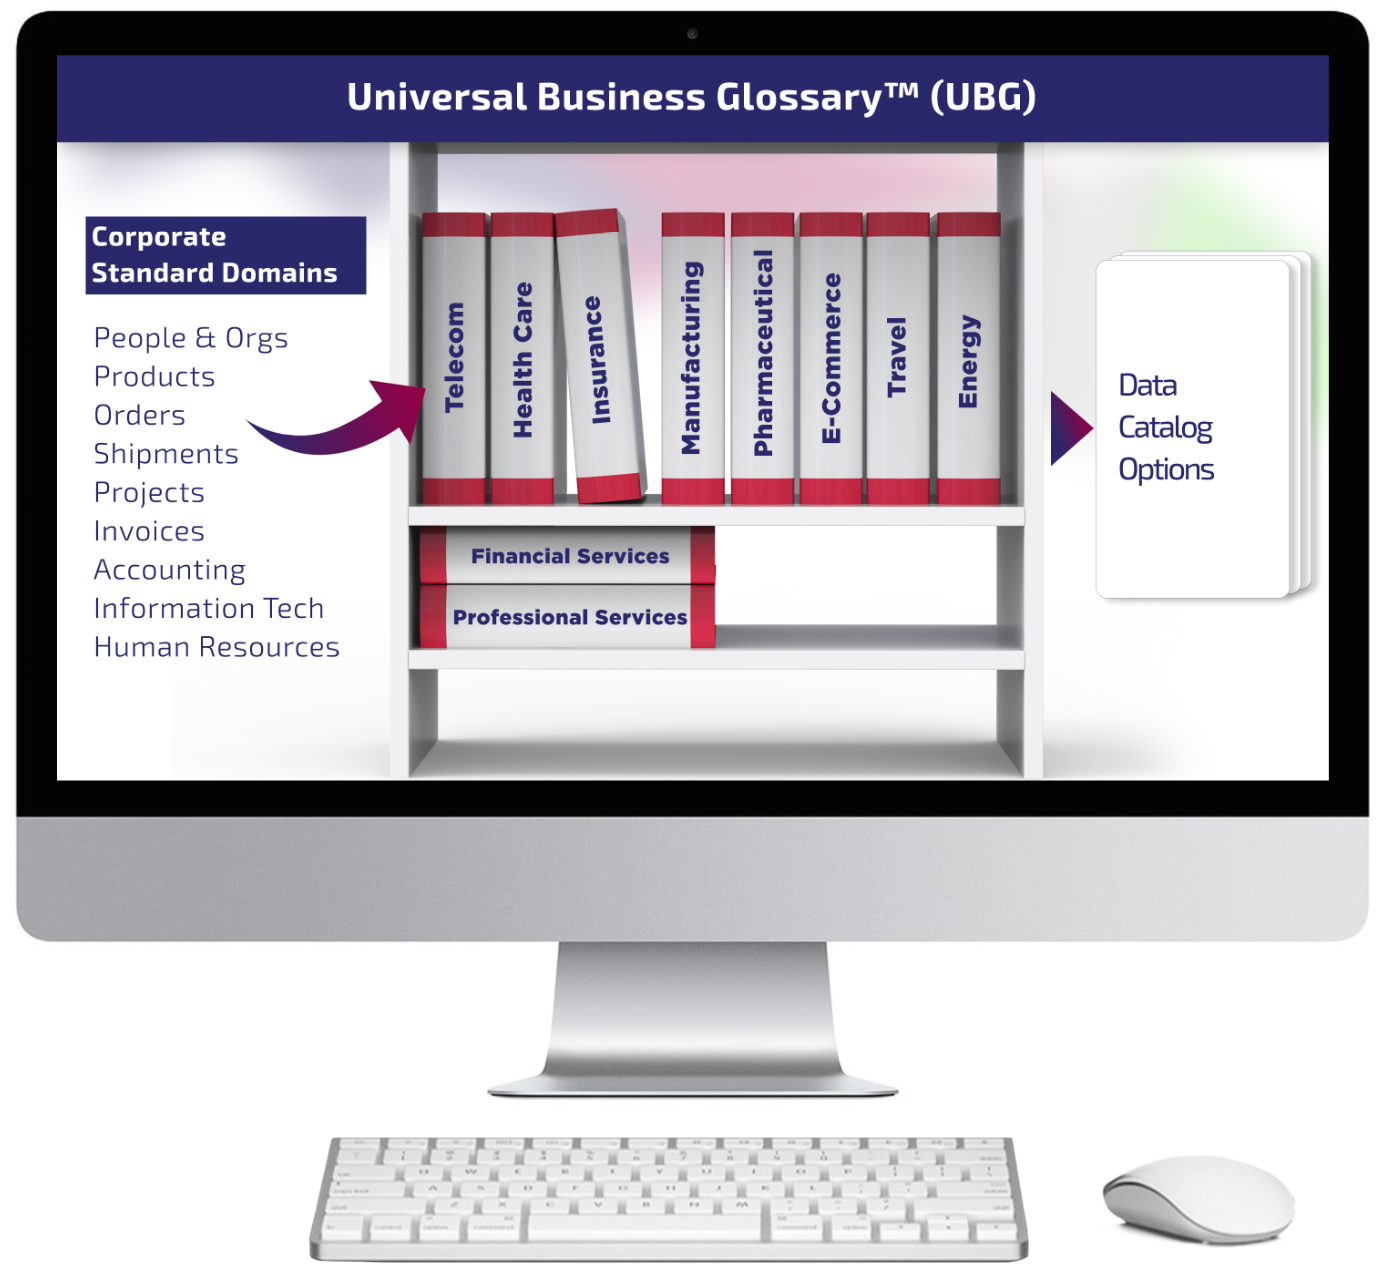 COMMON BUSINESS GLOSSARY ISSUES AND SOLUTIONS – Featured Image